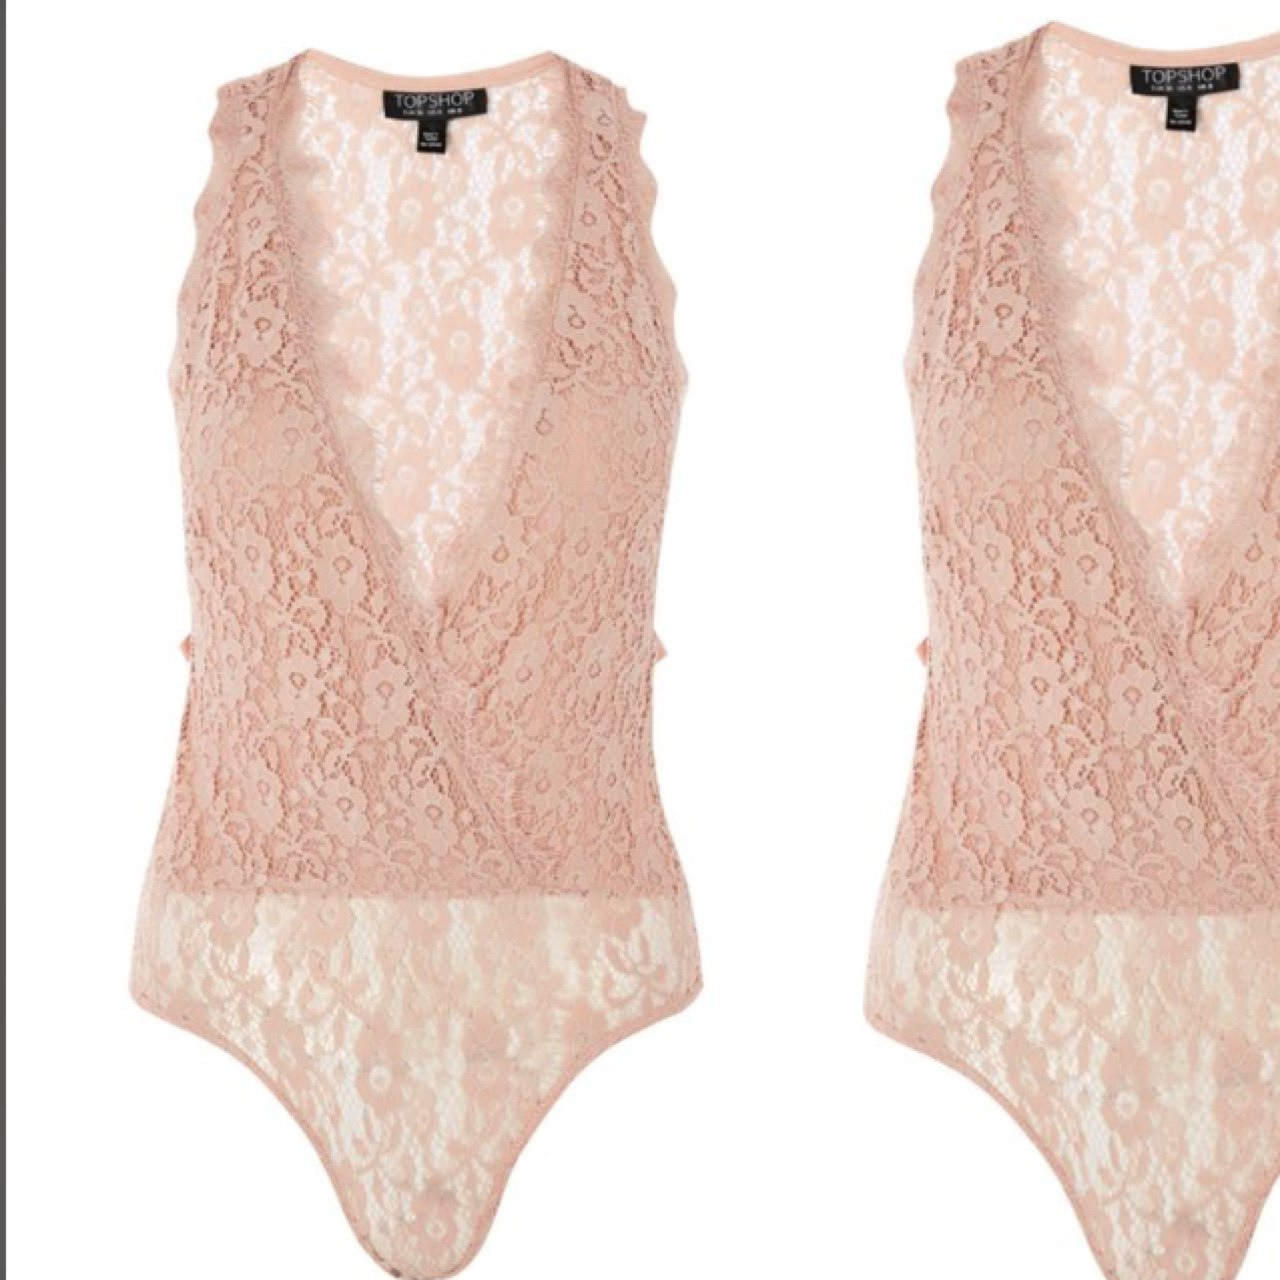 55585a01c5 Topshop baby pink lace tie up bodysuit in size 8